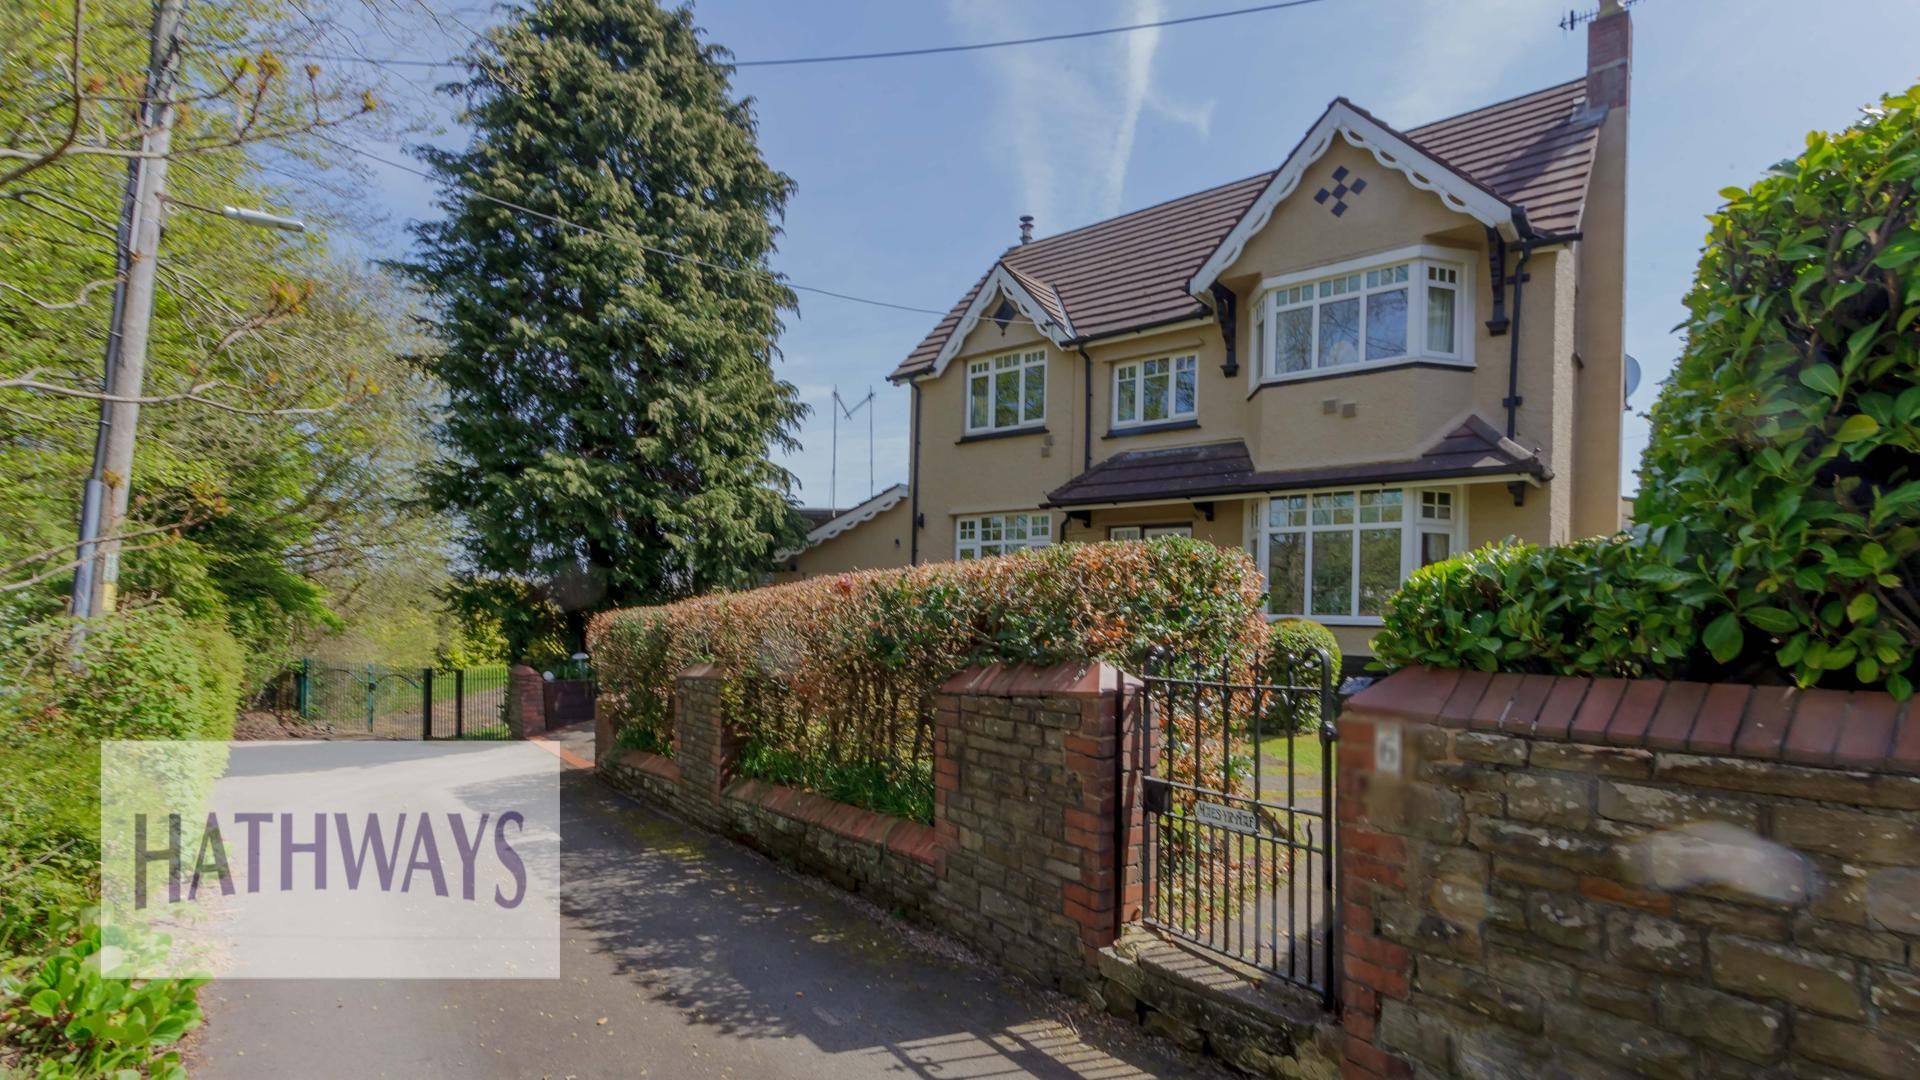 4 bed house for sale in The Avenue - Property Image 1